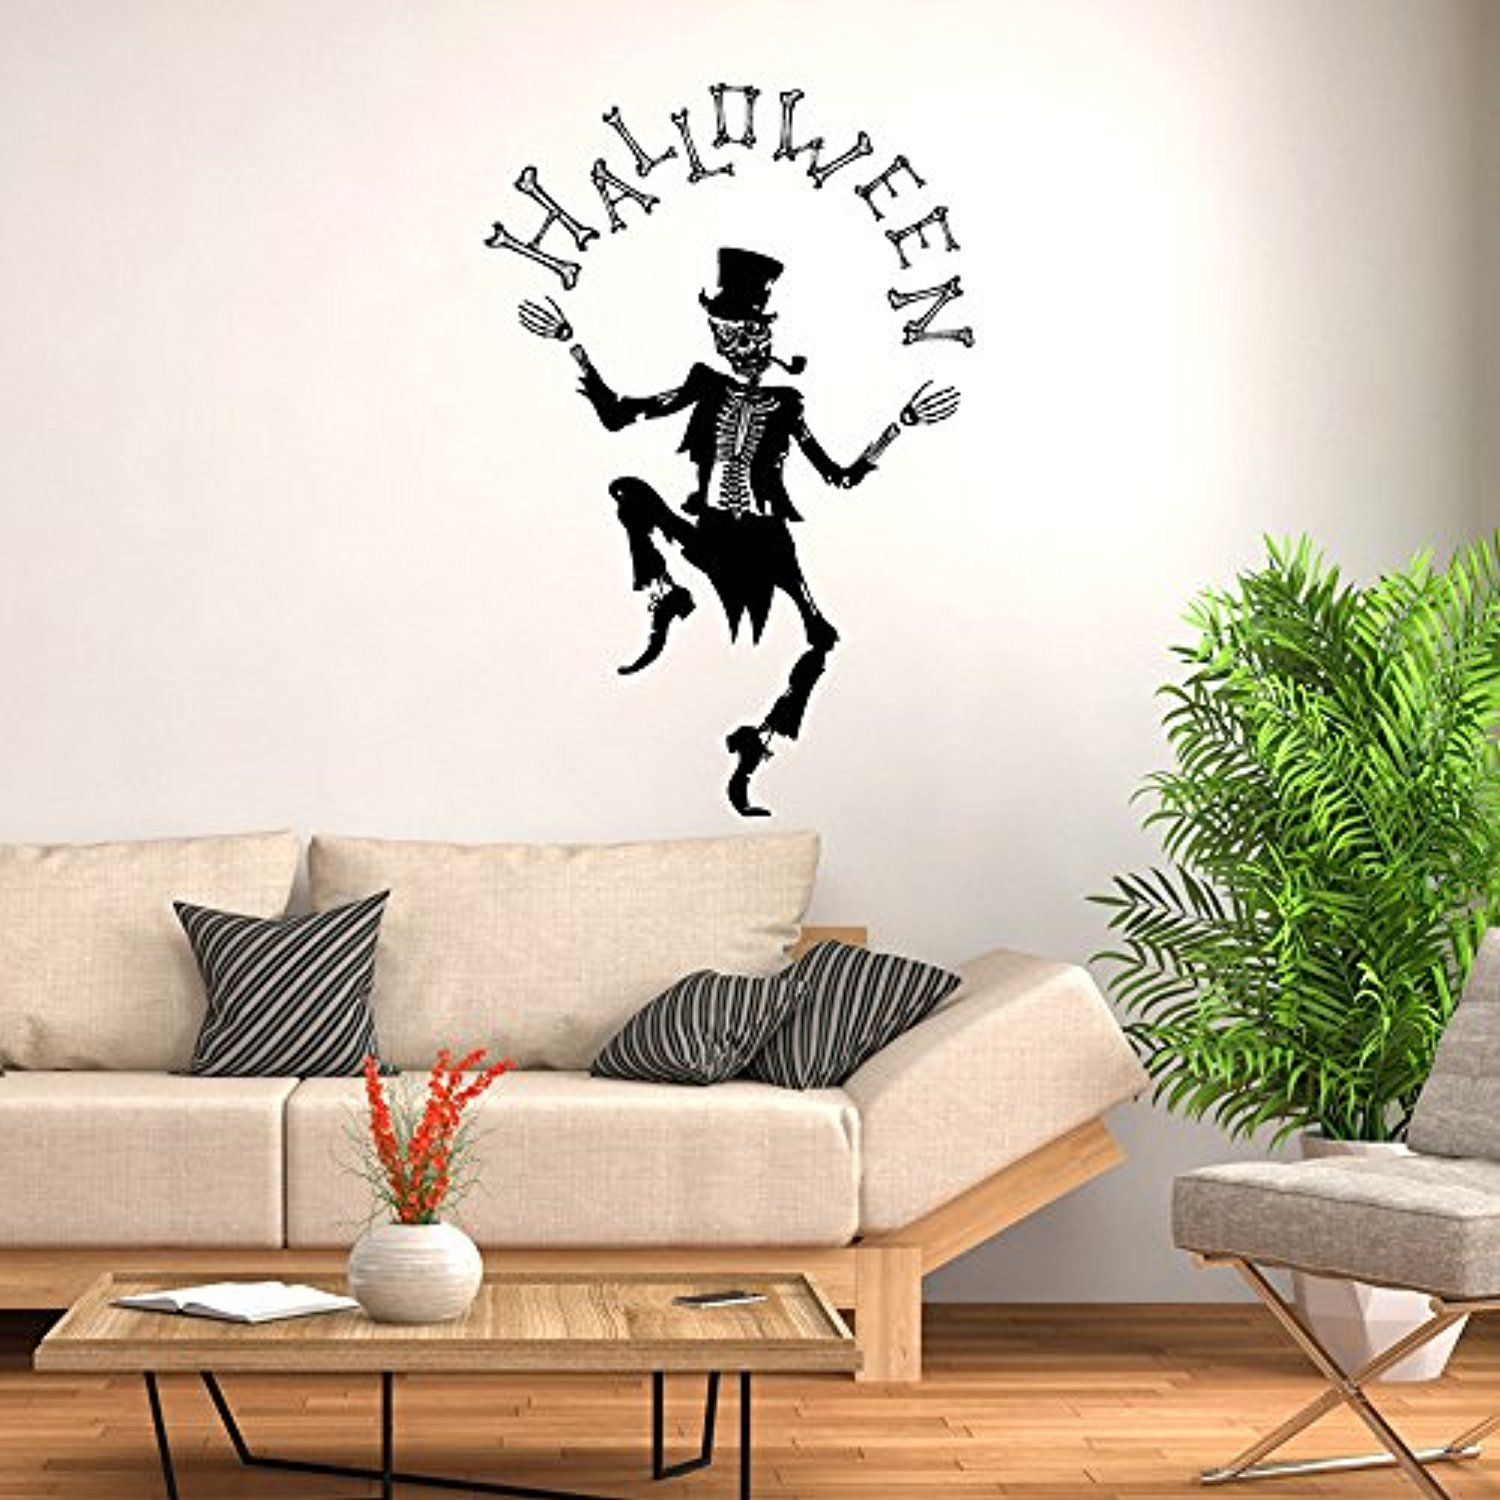 ML_Victor Happy Halloween Witch Skull Wall Decals Window Stickers - Kids Halloween Decorations